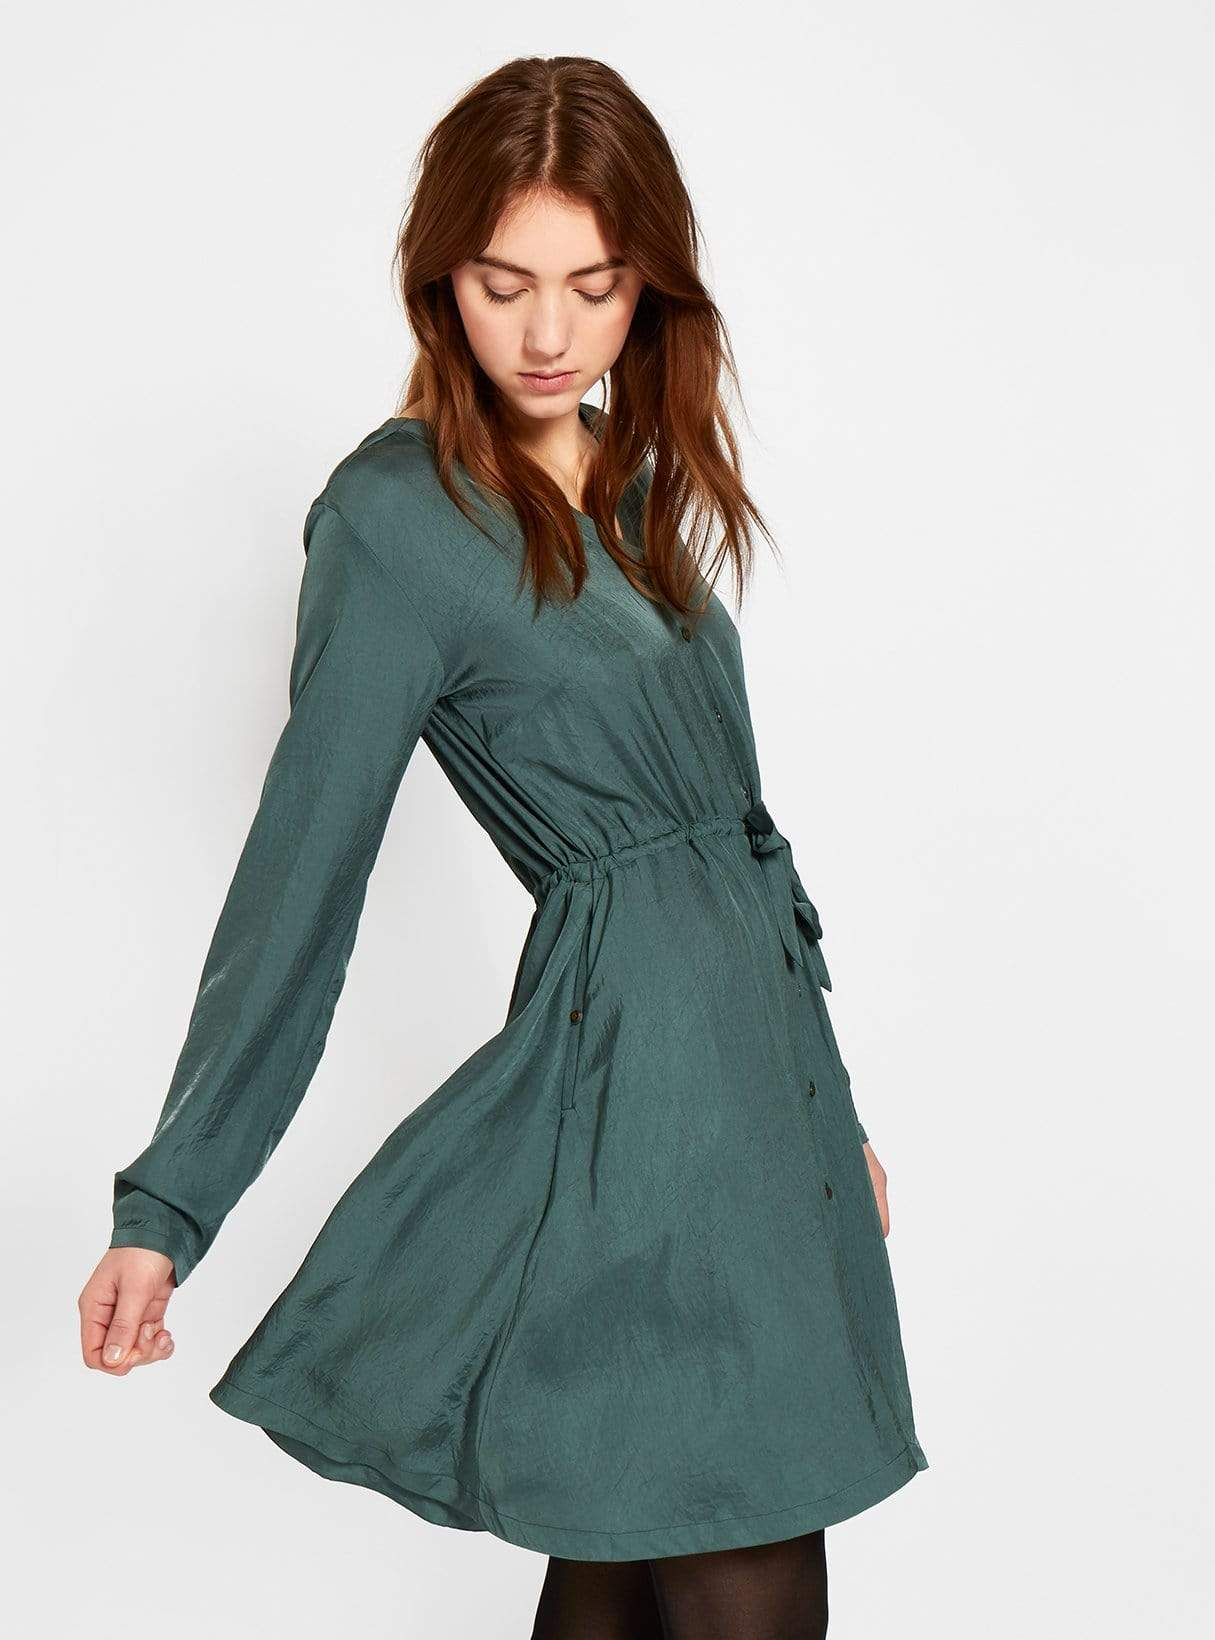 Vegan silk v-neck dress - dark green